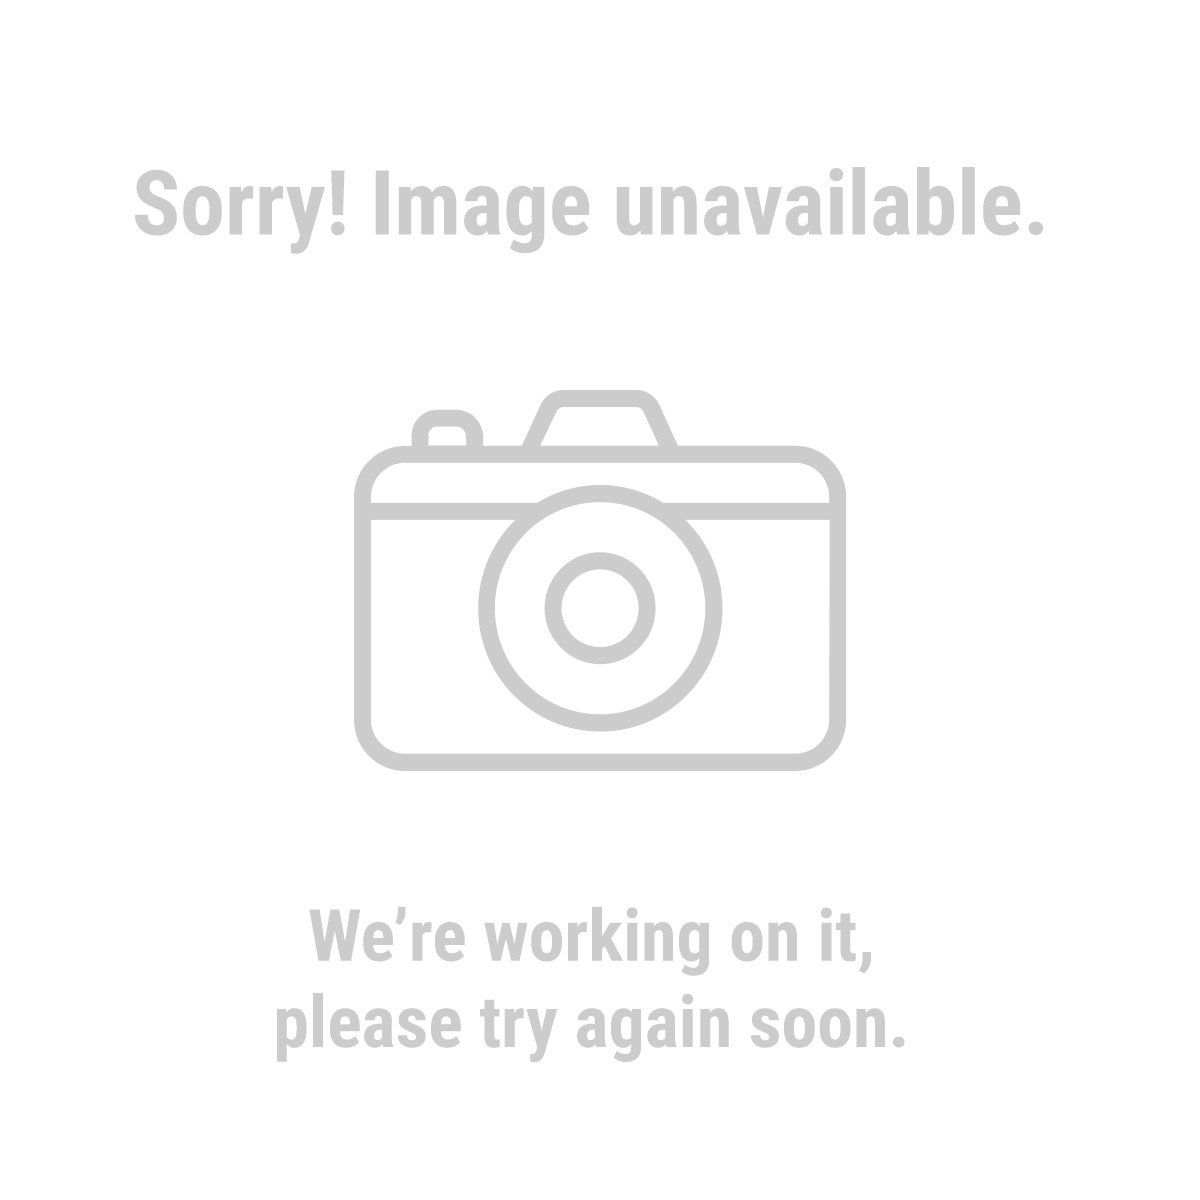 Predator Generators 69728 212cc, 4000 Watts Max/3200 Watts Rated Portable Generator - Certified for California